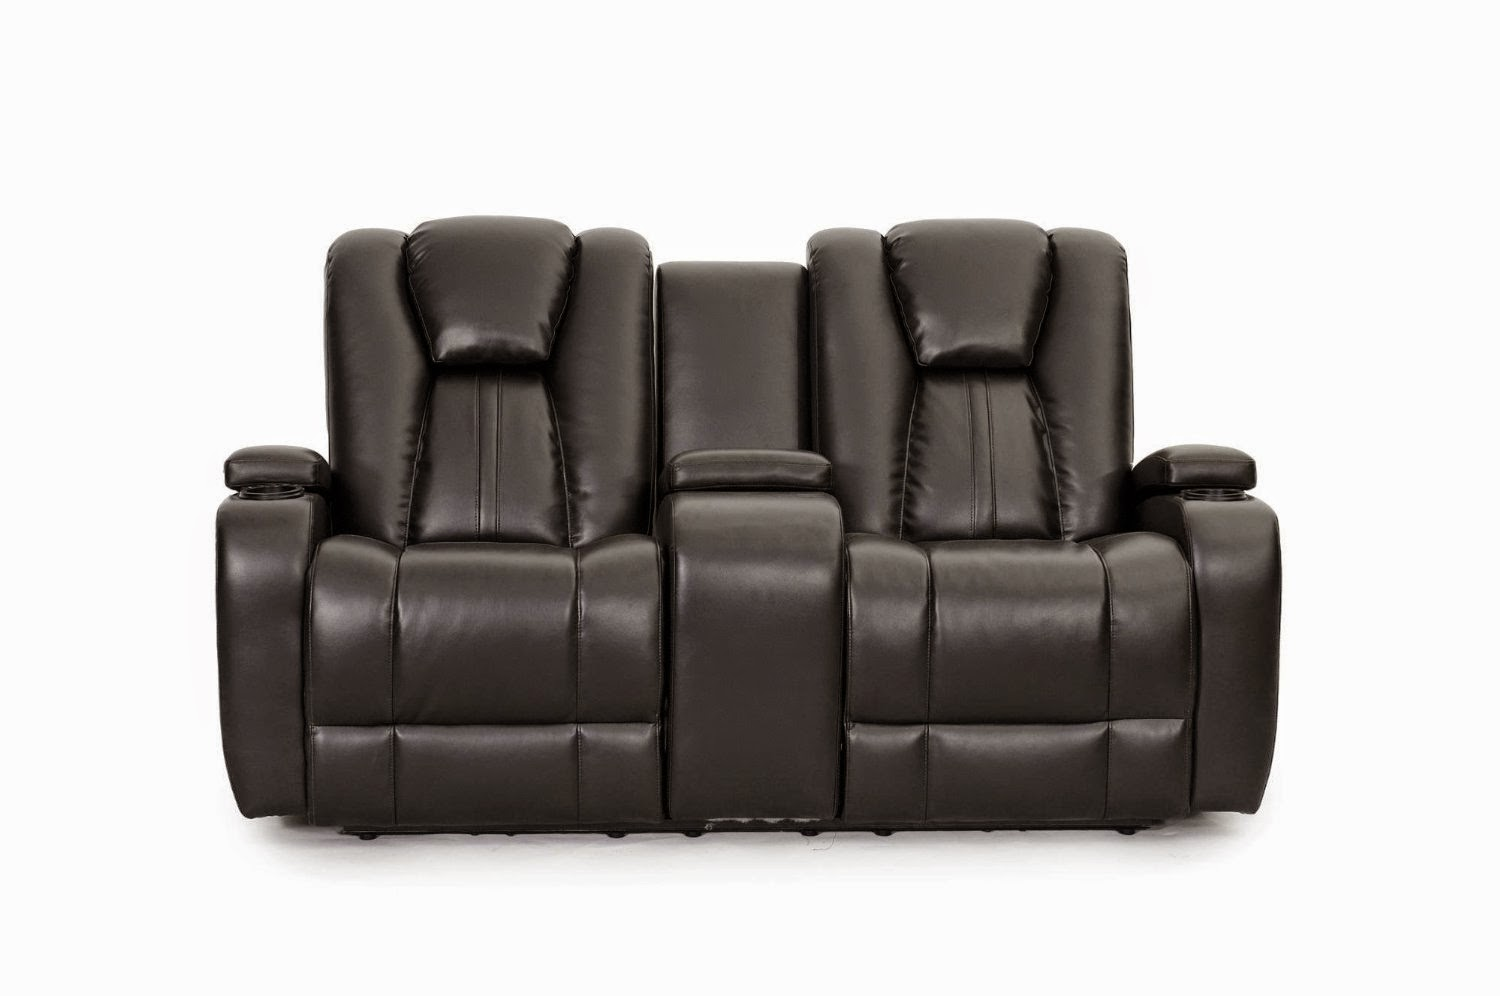 Modern Cheap Reclining Sofa Reviews: Reclining Sofa With ...